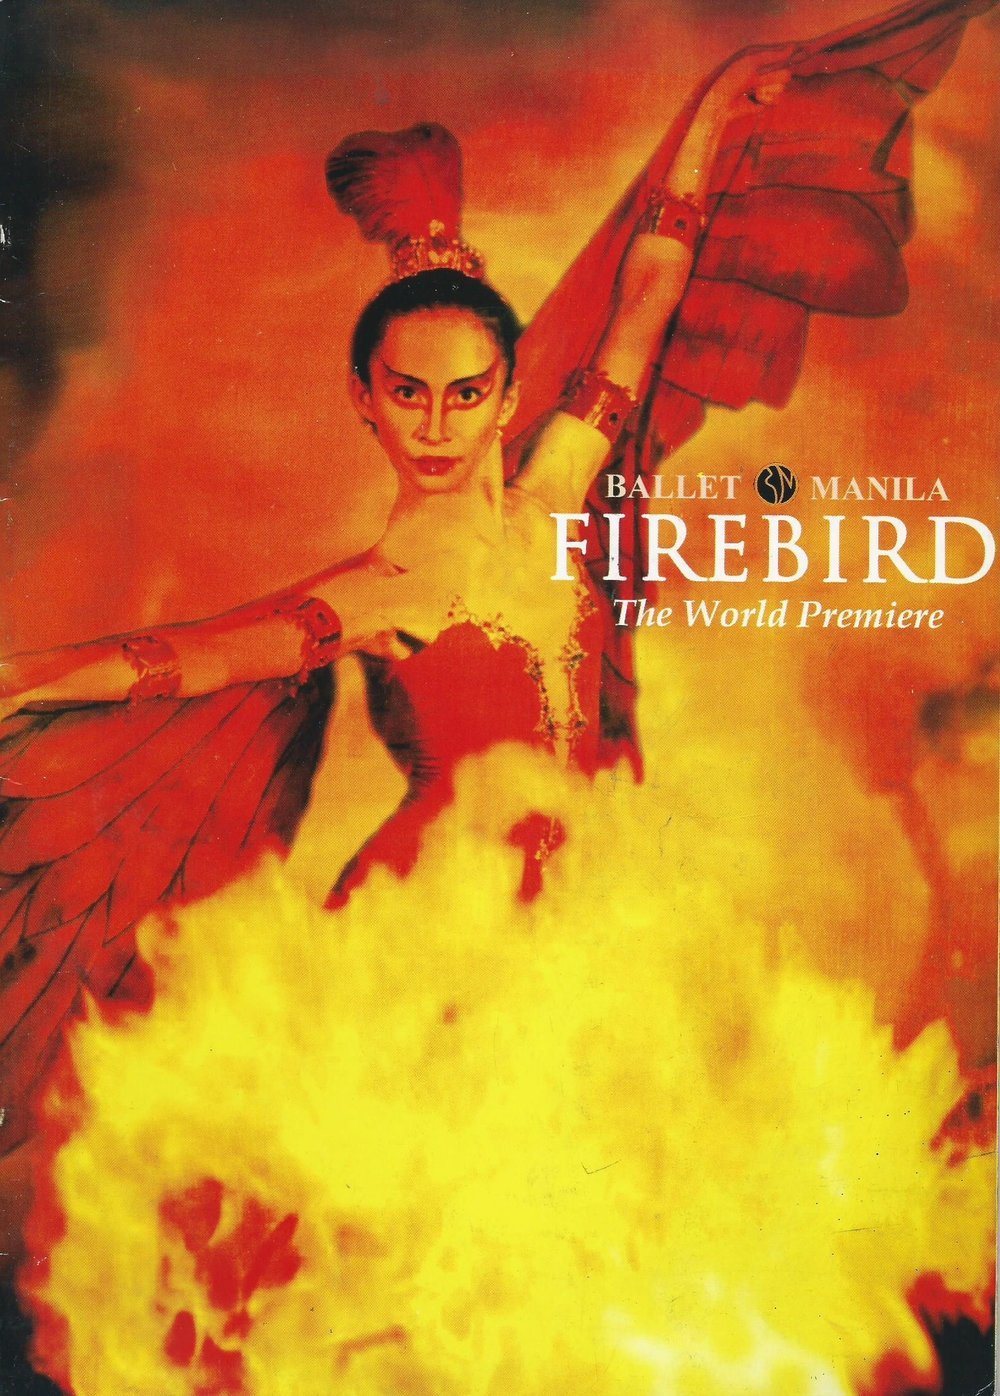 Firebird  – with production, libretto and choreography by Jean Paul Comelin – had its world premiere in September 2000. Photo courtesy of the Ballet Manila Archives